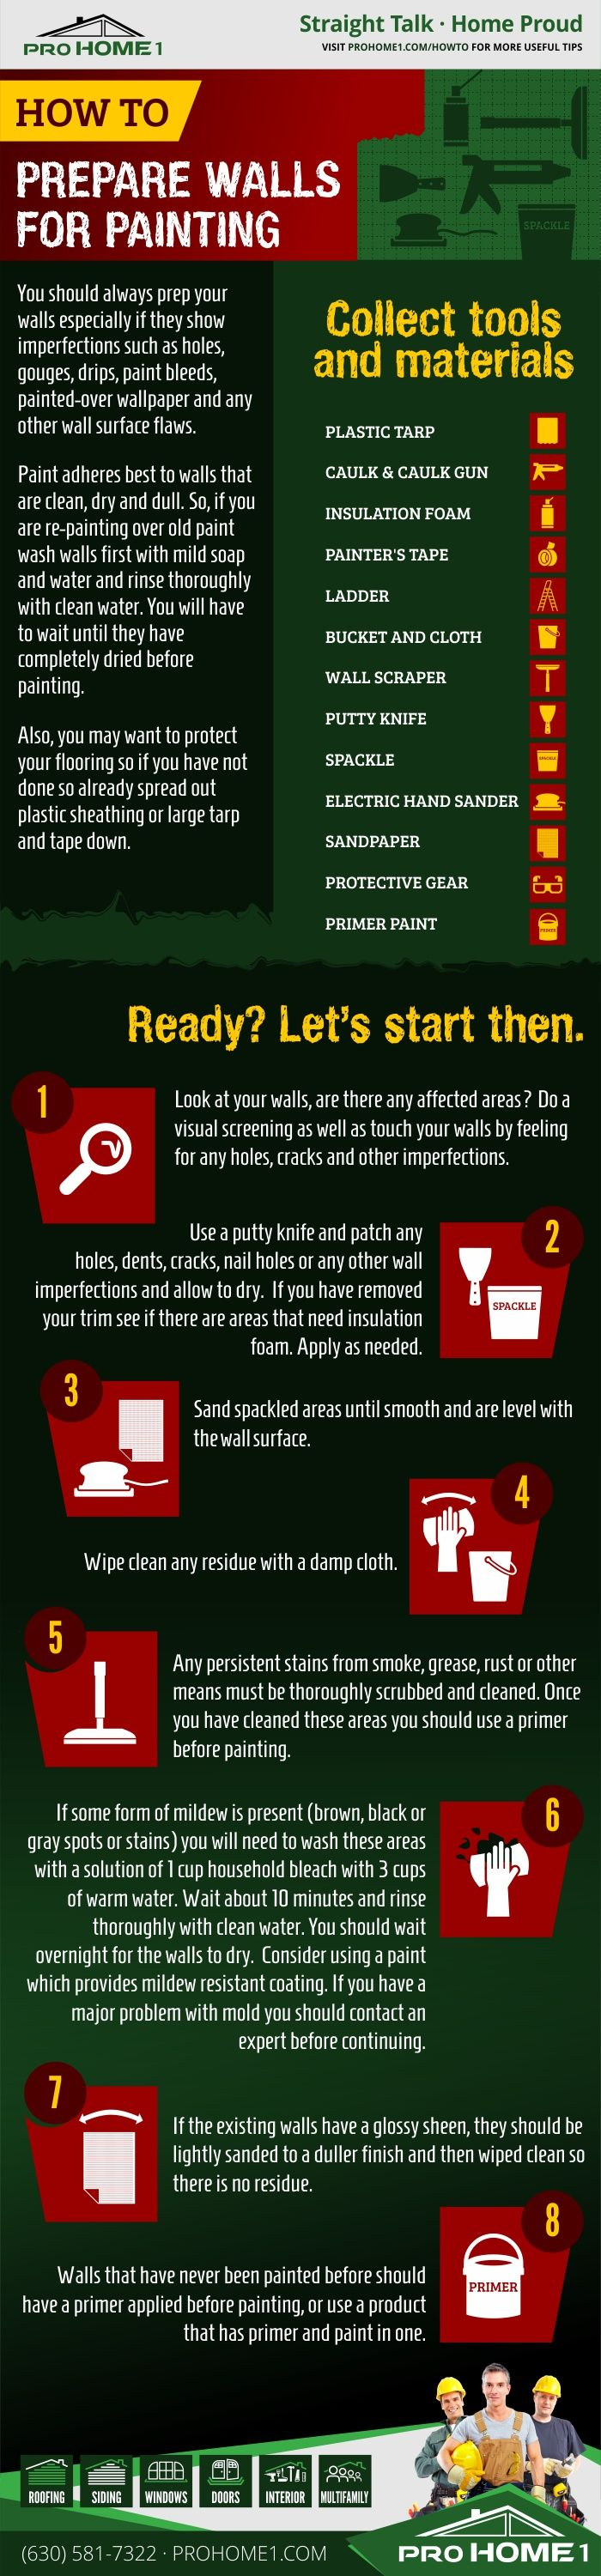 Best 25 preparing walls for painting ideas on pinterest fixing drywall prepping walls for - How to prepare walls for painting in a few easy steps ...